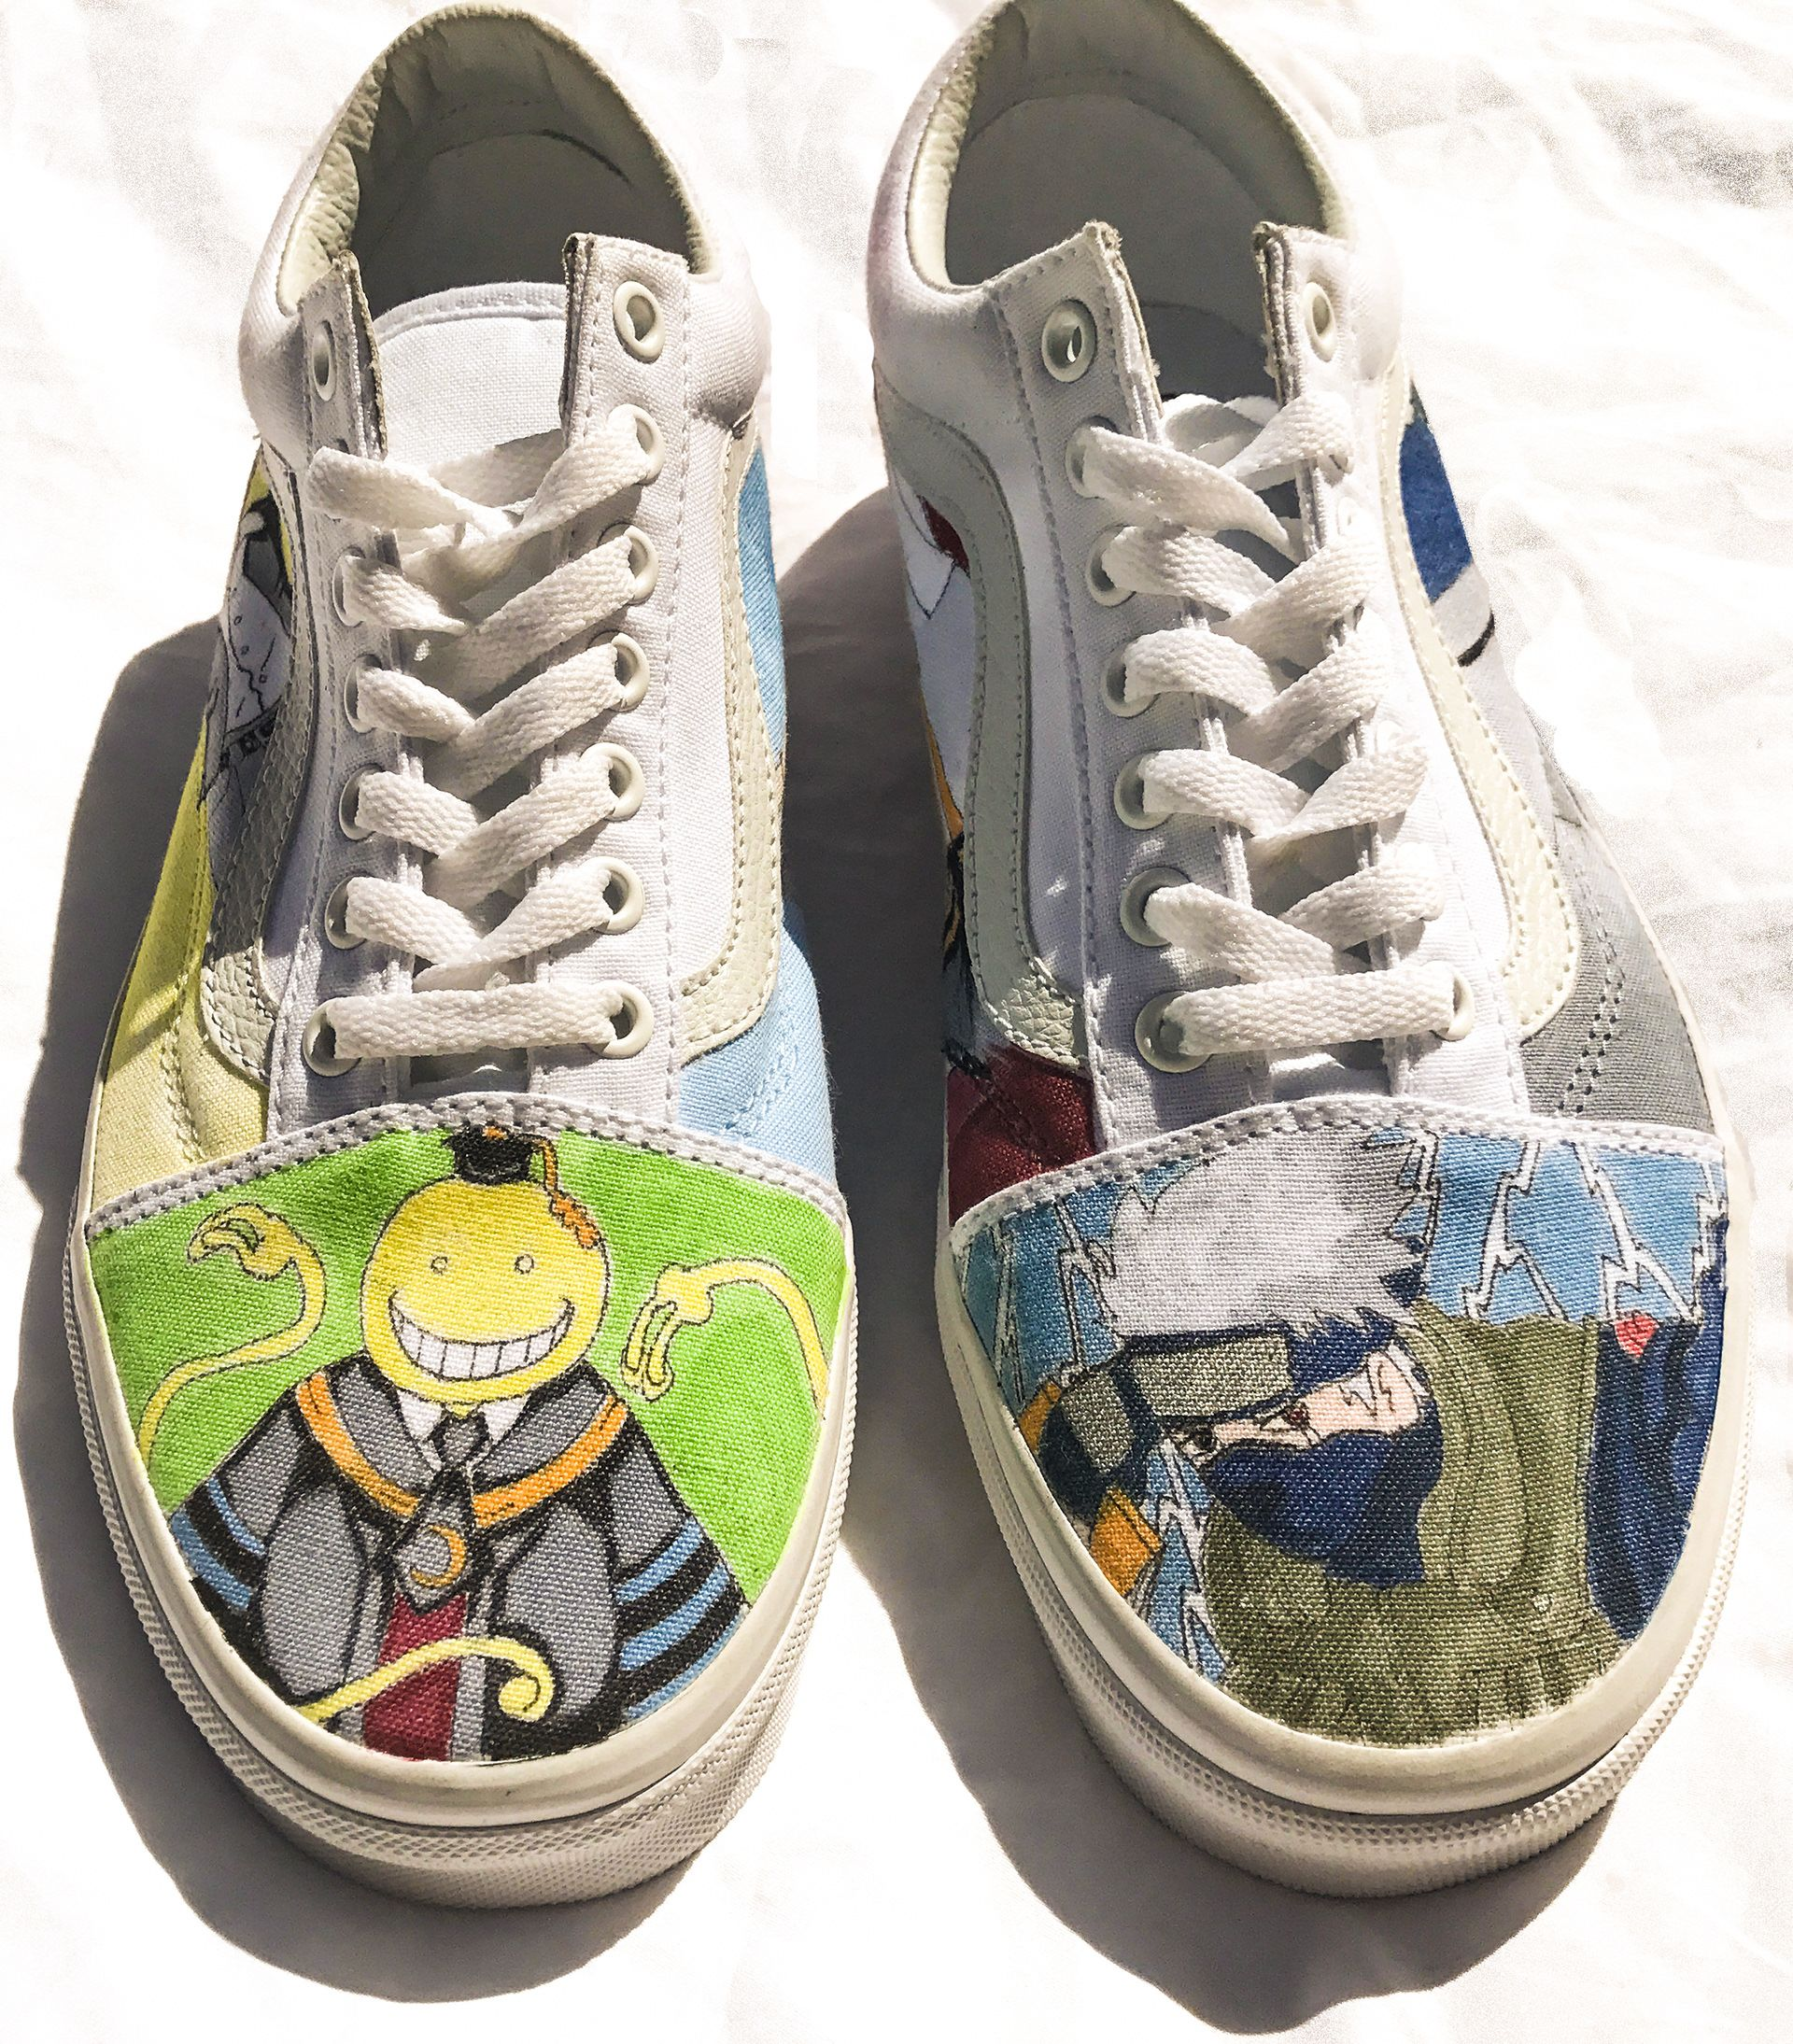 #32 Classroom Assassin Anime on Vans Old Skool lace ups